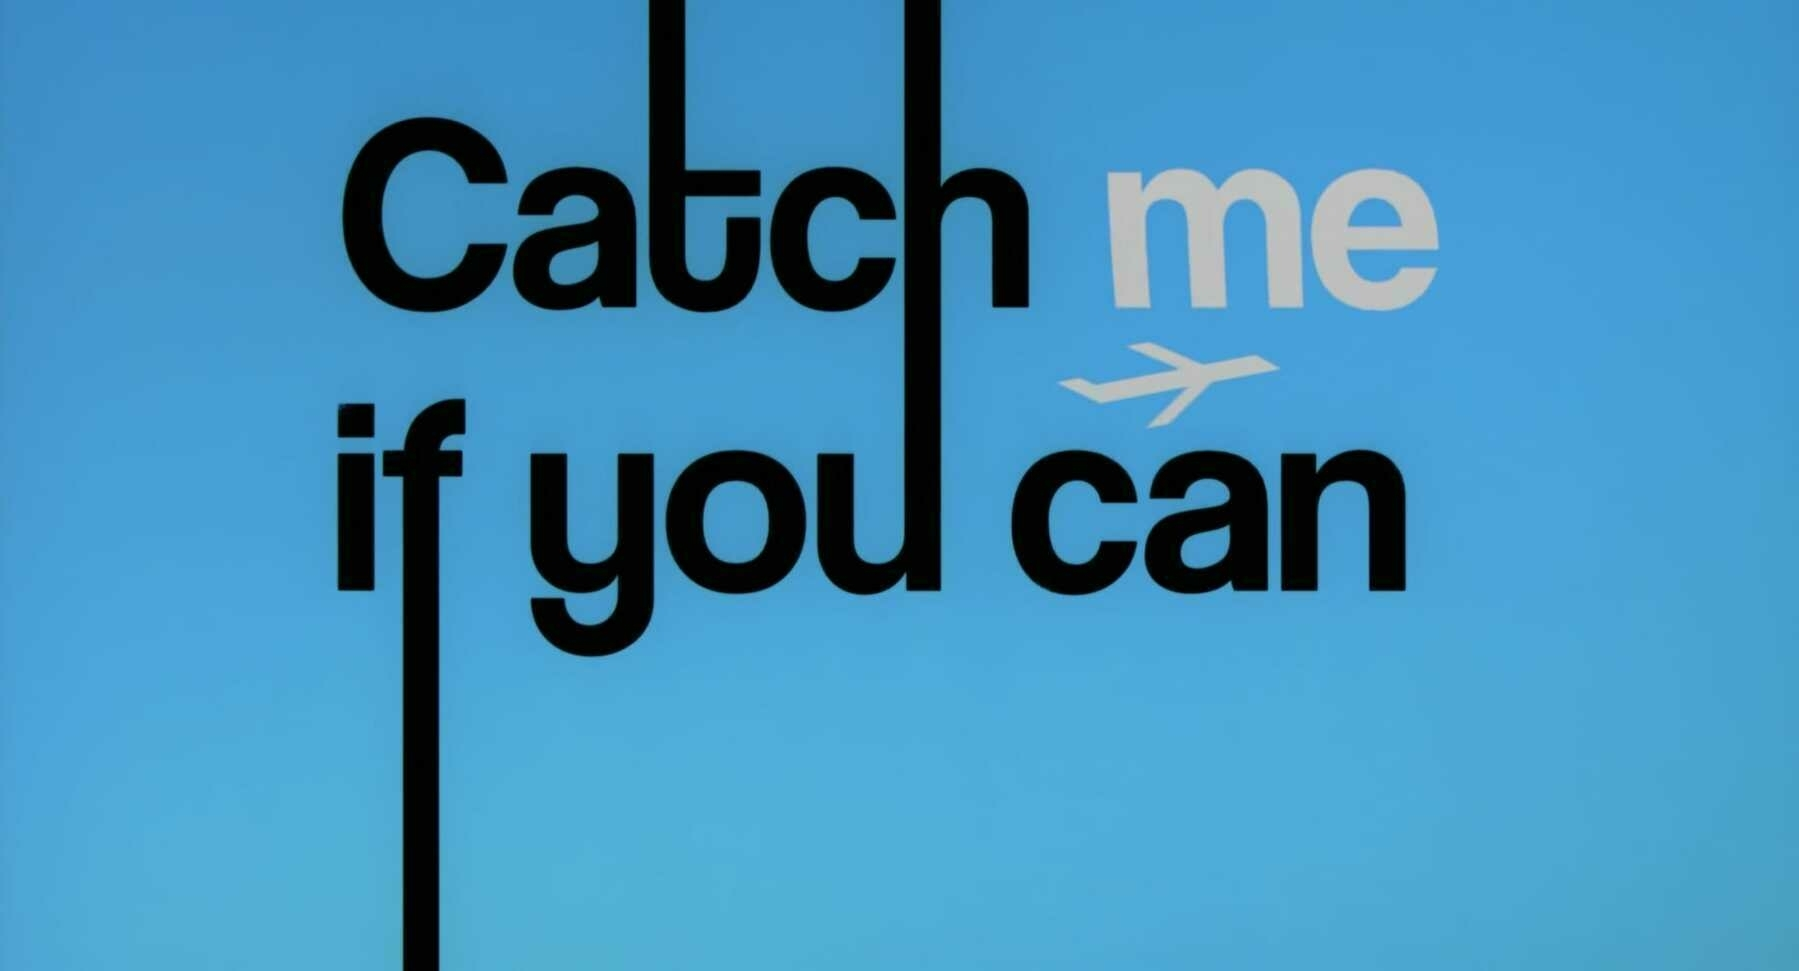 The title card for the film, Catch Me If You Can.